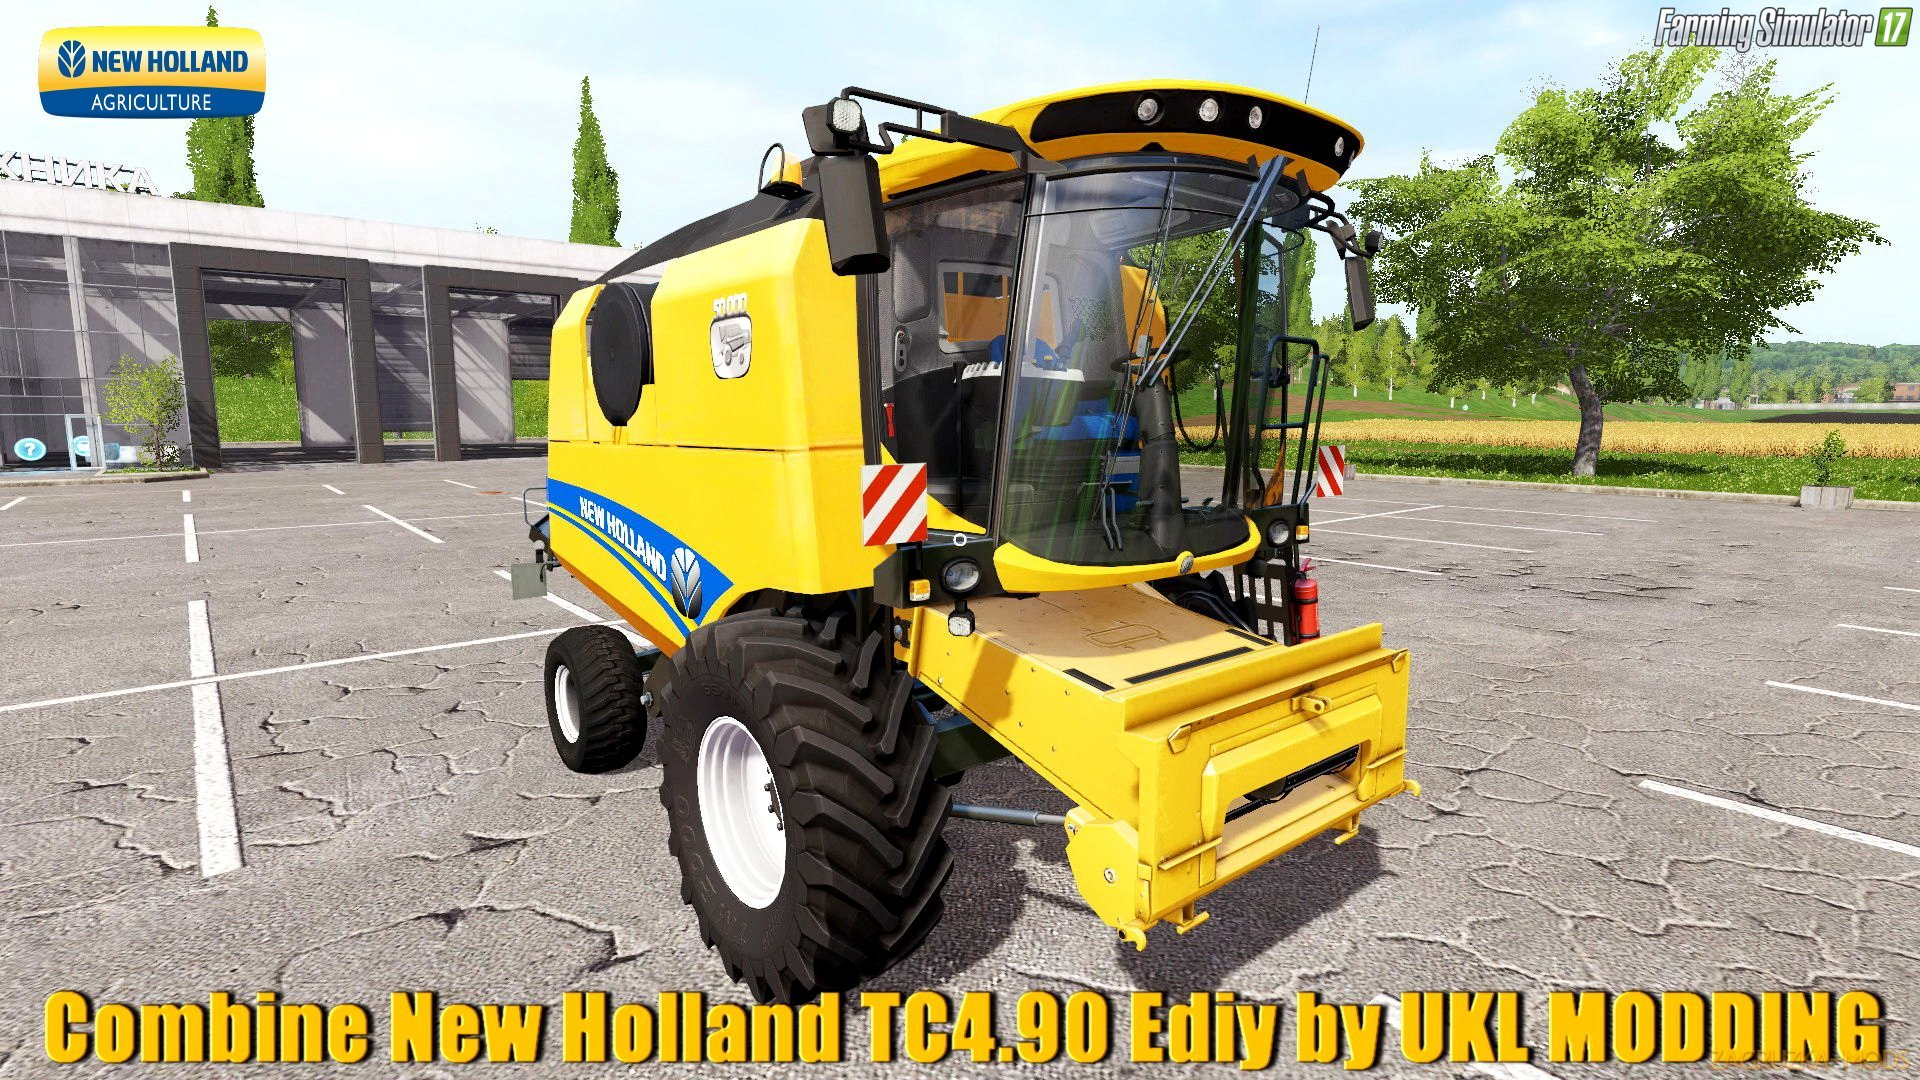 New Holland TC4.90 v1.0 Edit by UKL MODDING for FS 17